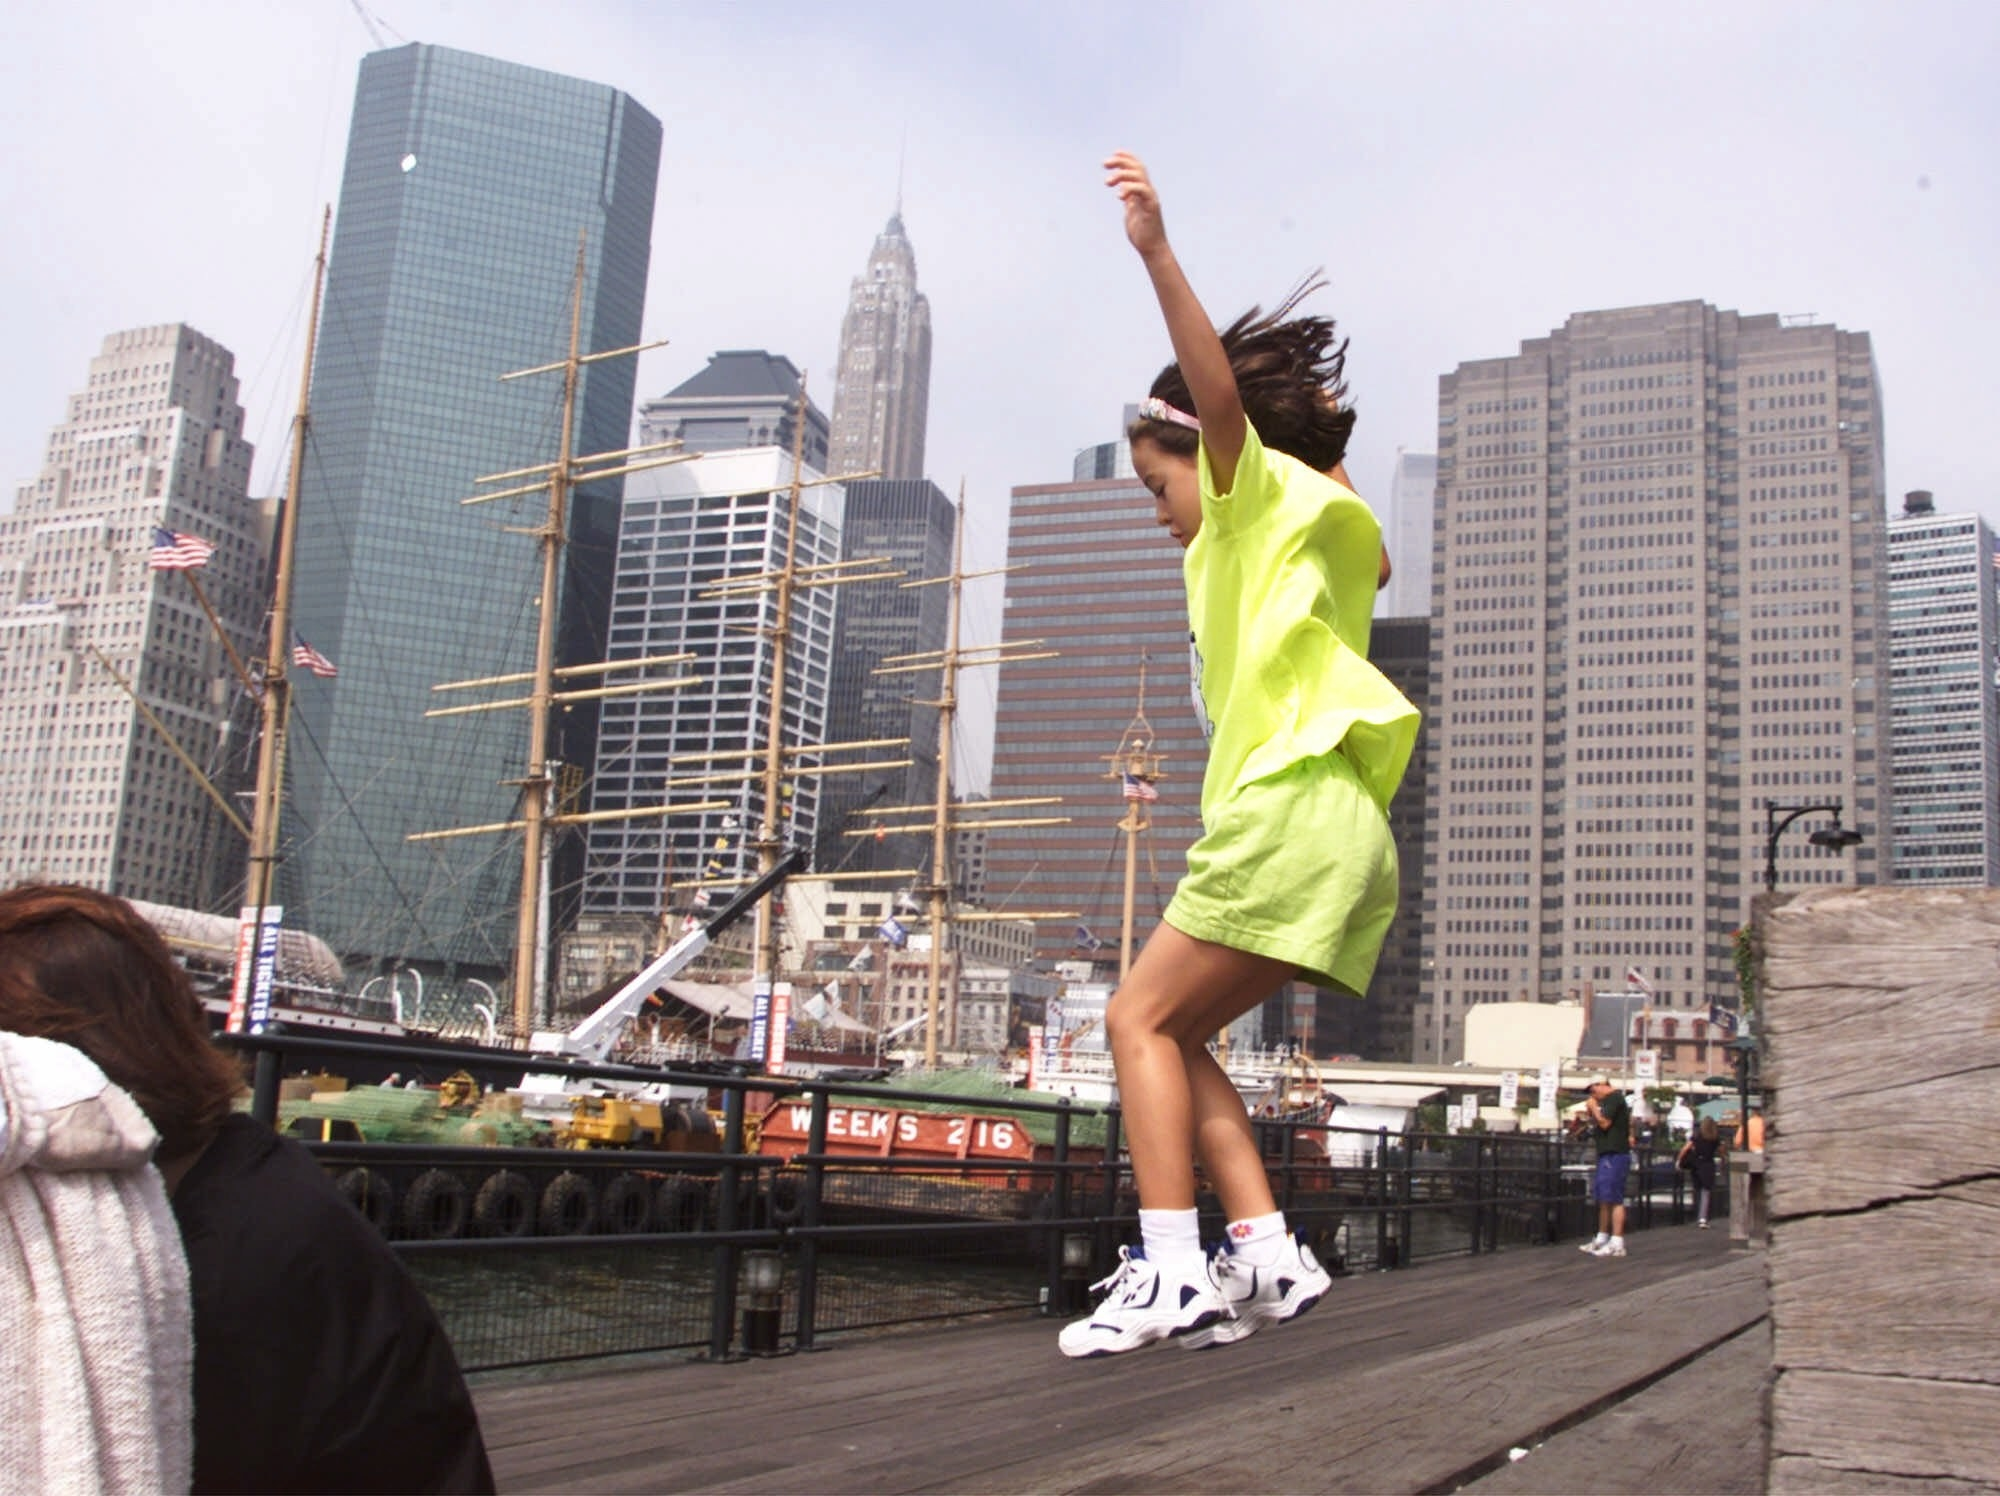 A young girl jumps off a structure and is photographed mid-air by the waterfront